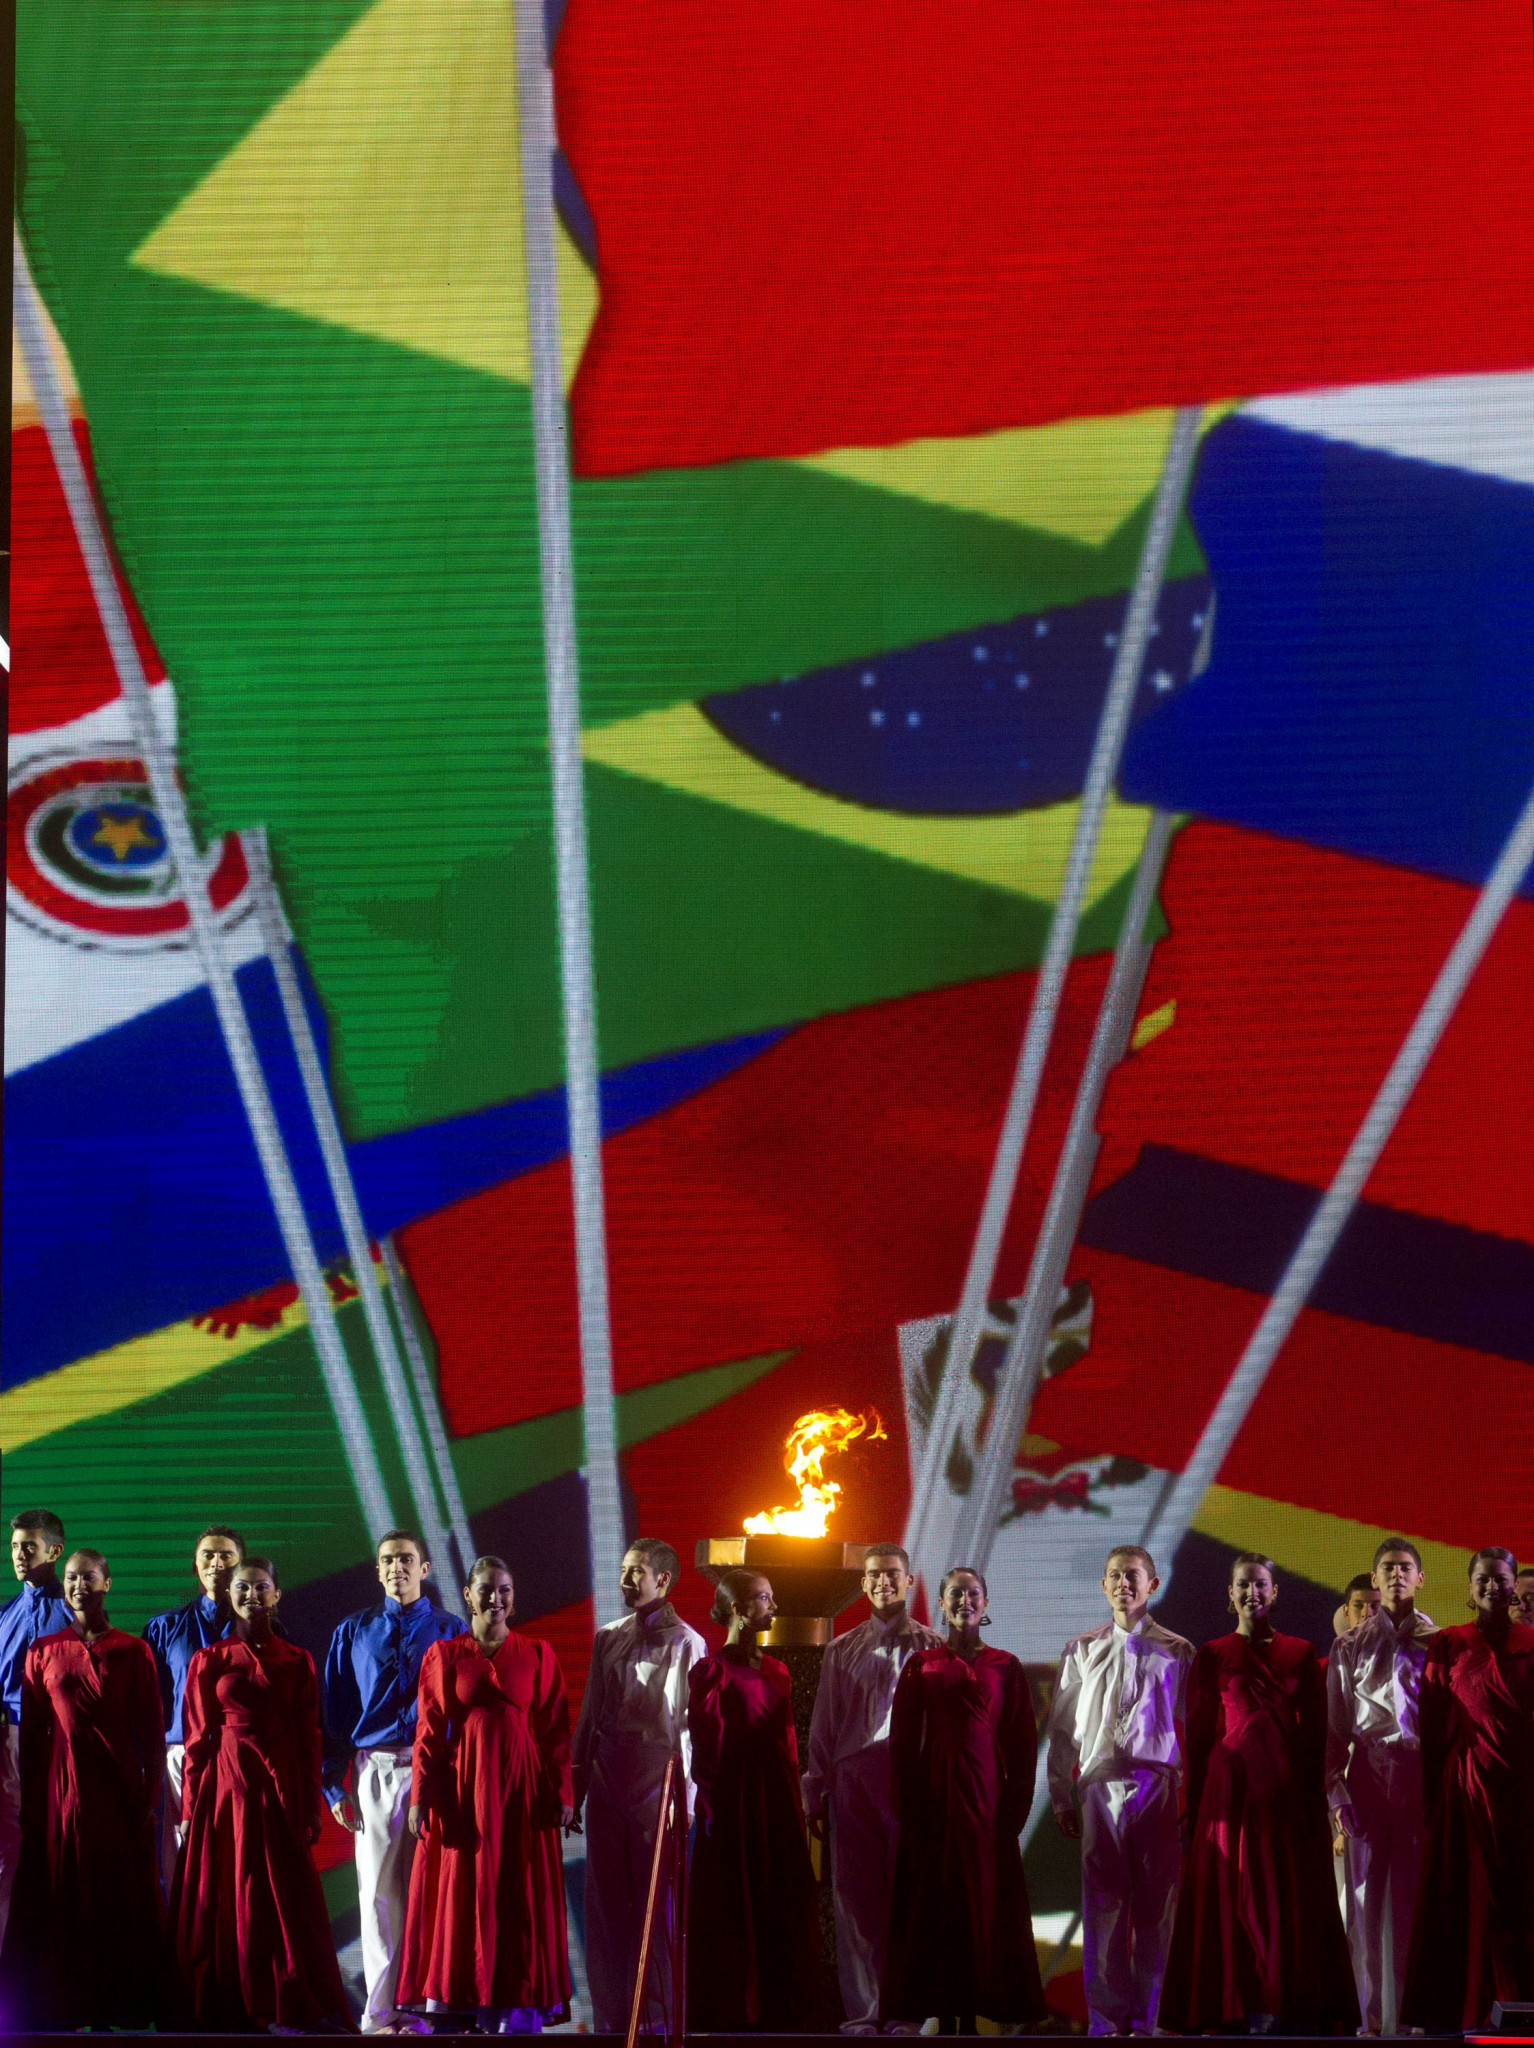 The last edition of the South American Games took place in Chile's capital Santiago in 2014 ©Getty Images